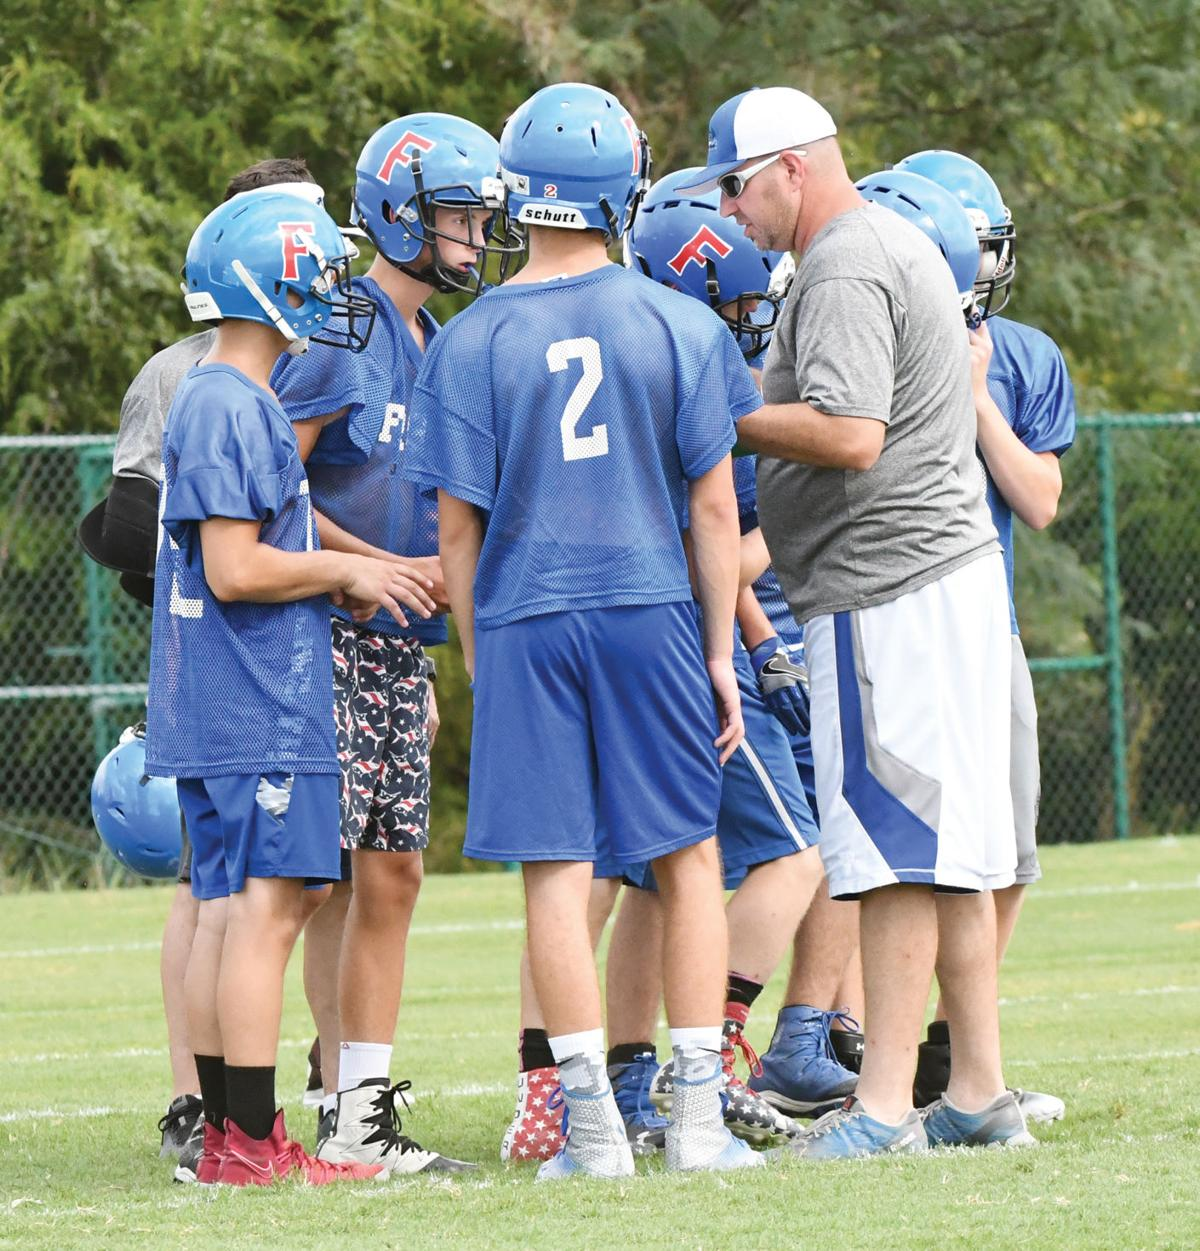 A whole new world: Area schools ready to take on conference